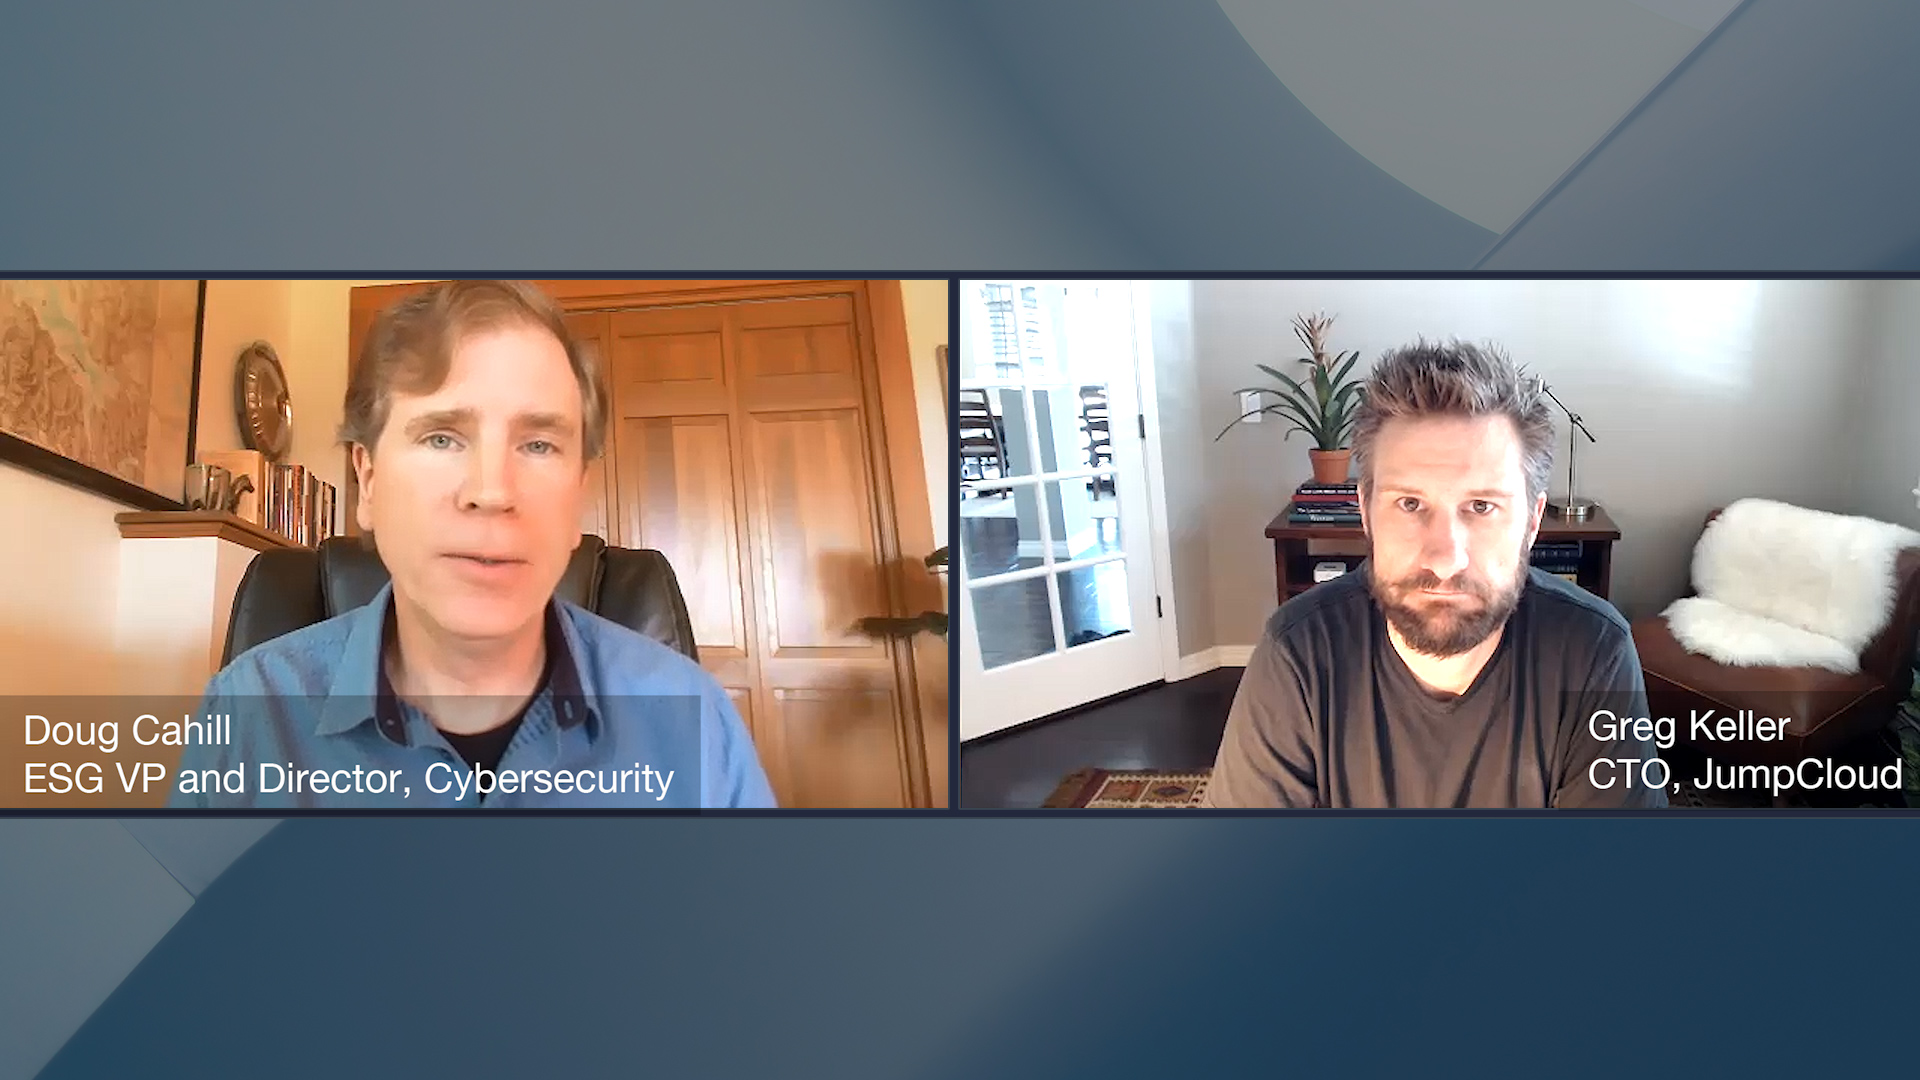 Trends in Cloud Security: The Use Cases of Directory-as-a-Service (DaaS) (Video)